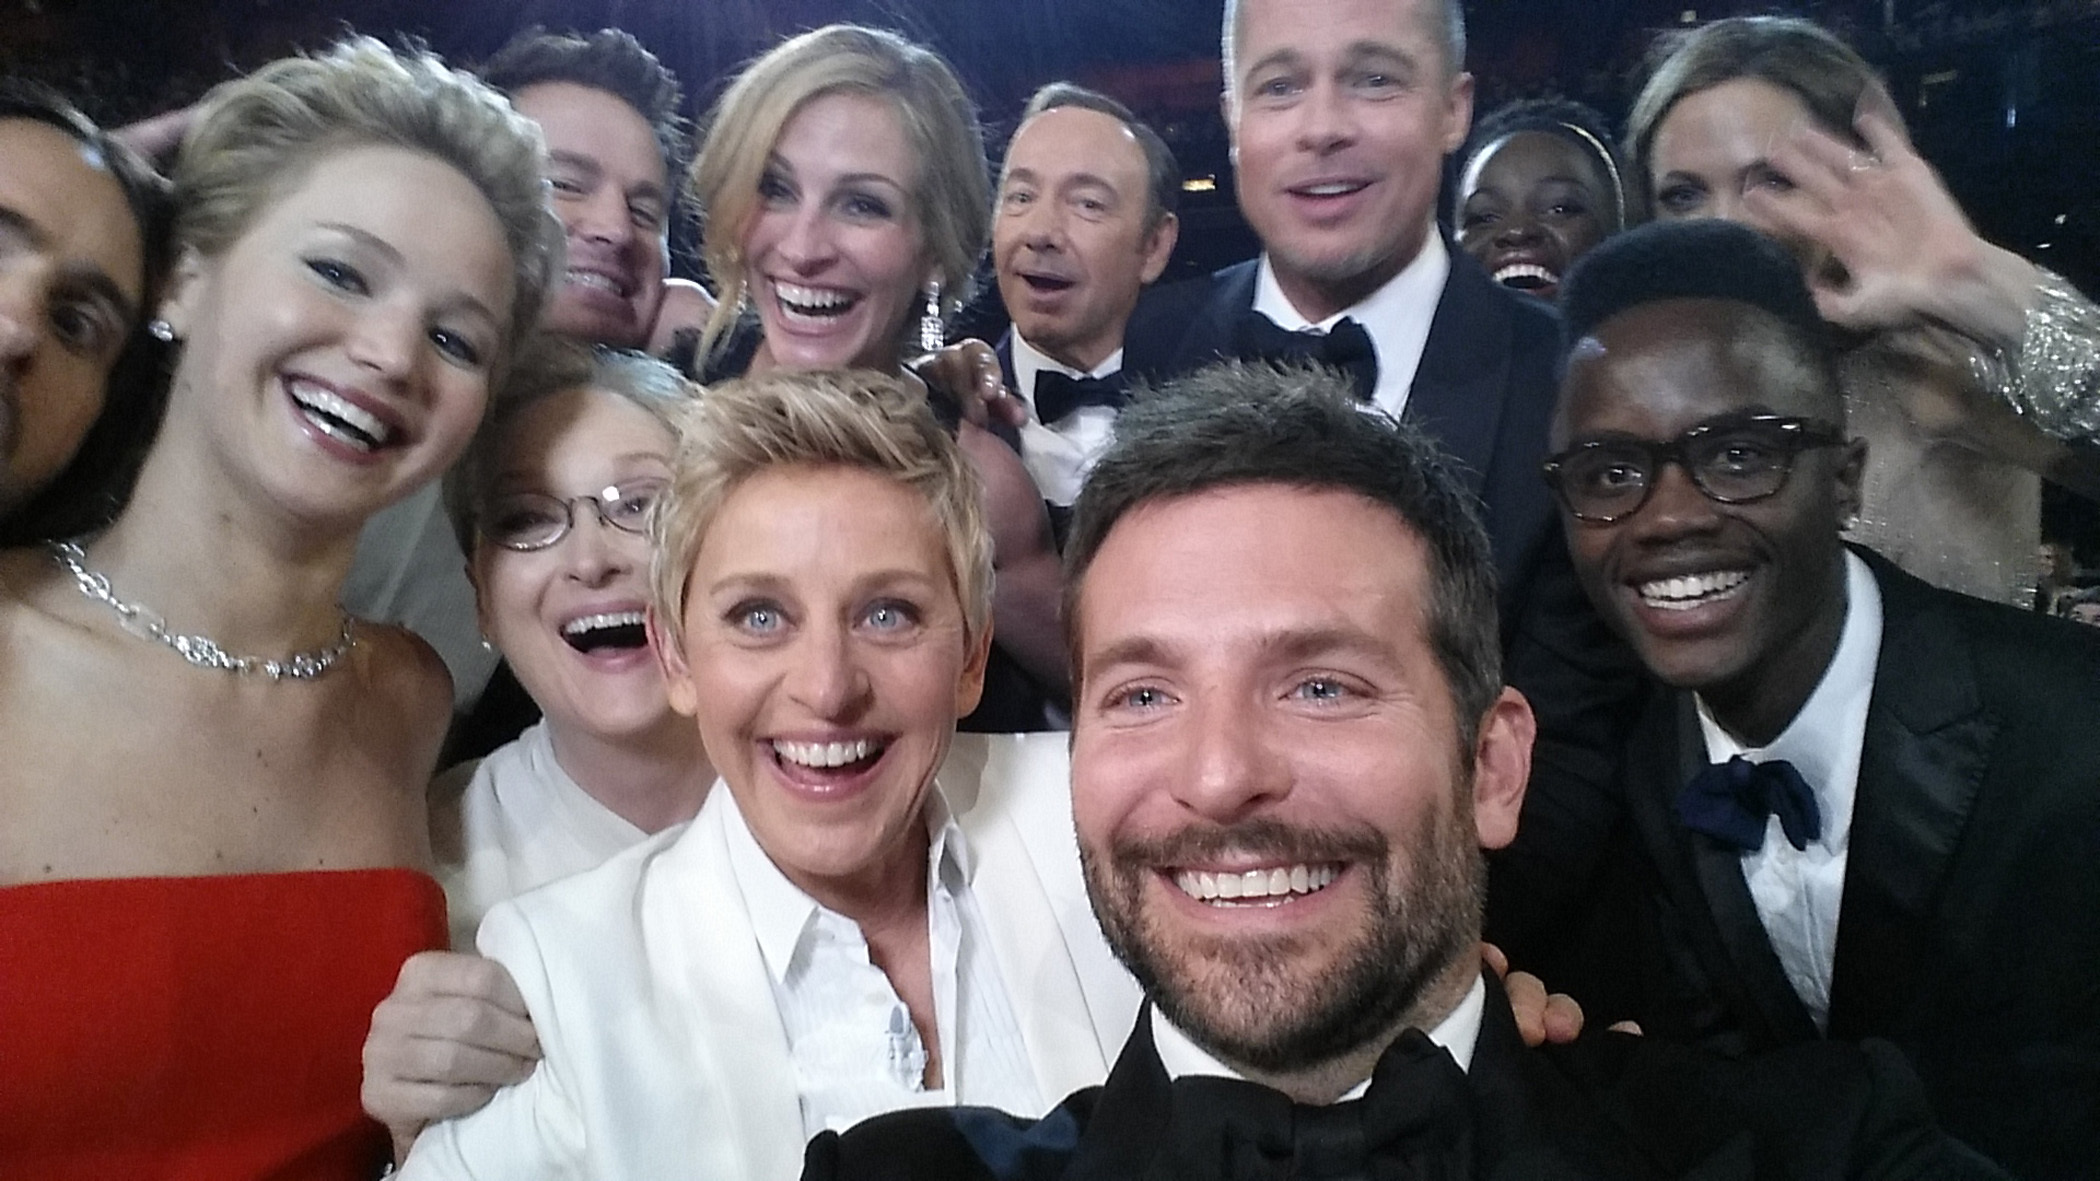 Oscar host Ellen DeGeneres poses for a selfie taken by Bradley Cooper with Jared Leto, Jennifer Lawrence, Channing Tatum, Meryl Streep, Julia Roberts, Kevin Spacey, Brad Pitt, Lupita Nyong'o, Angelina Jolie, Peter Nyong'o Jr. and Bradley Cooper during the 86th Annual Academy Awards at the Dolby Theatre in Hollywood on March 2, 2014.